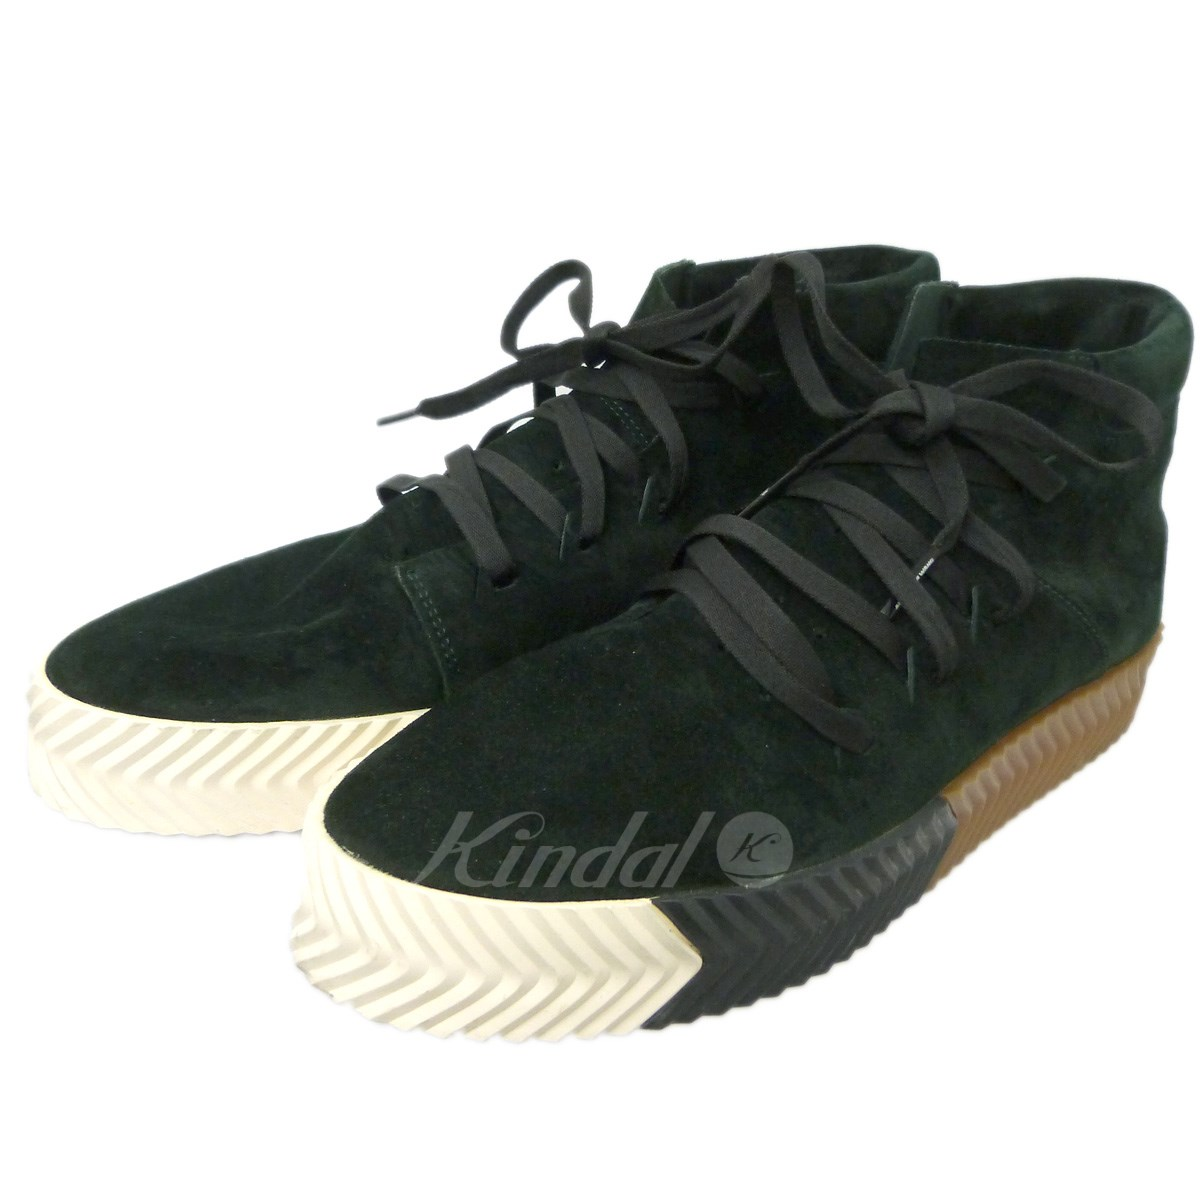 quality design a1401 b5681 adidas originals by Alexander Wang AC6851